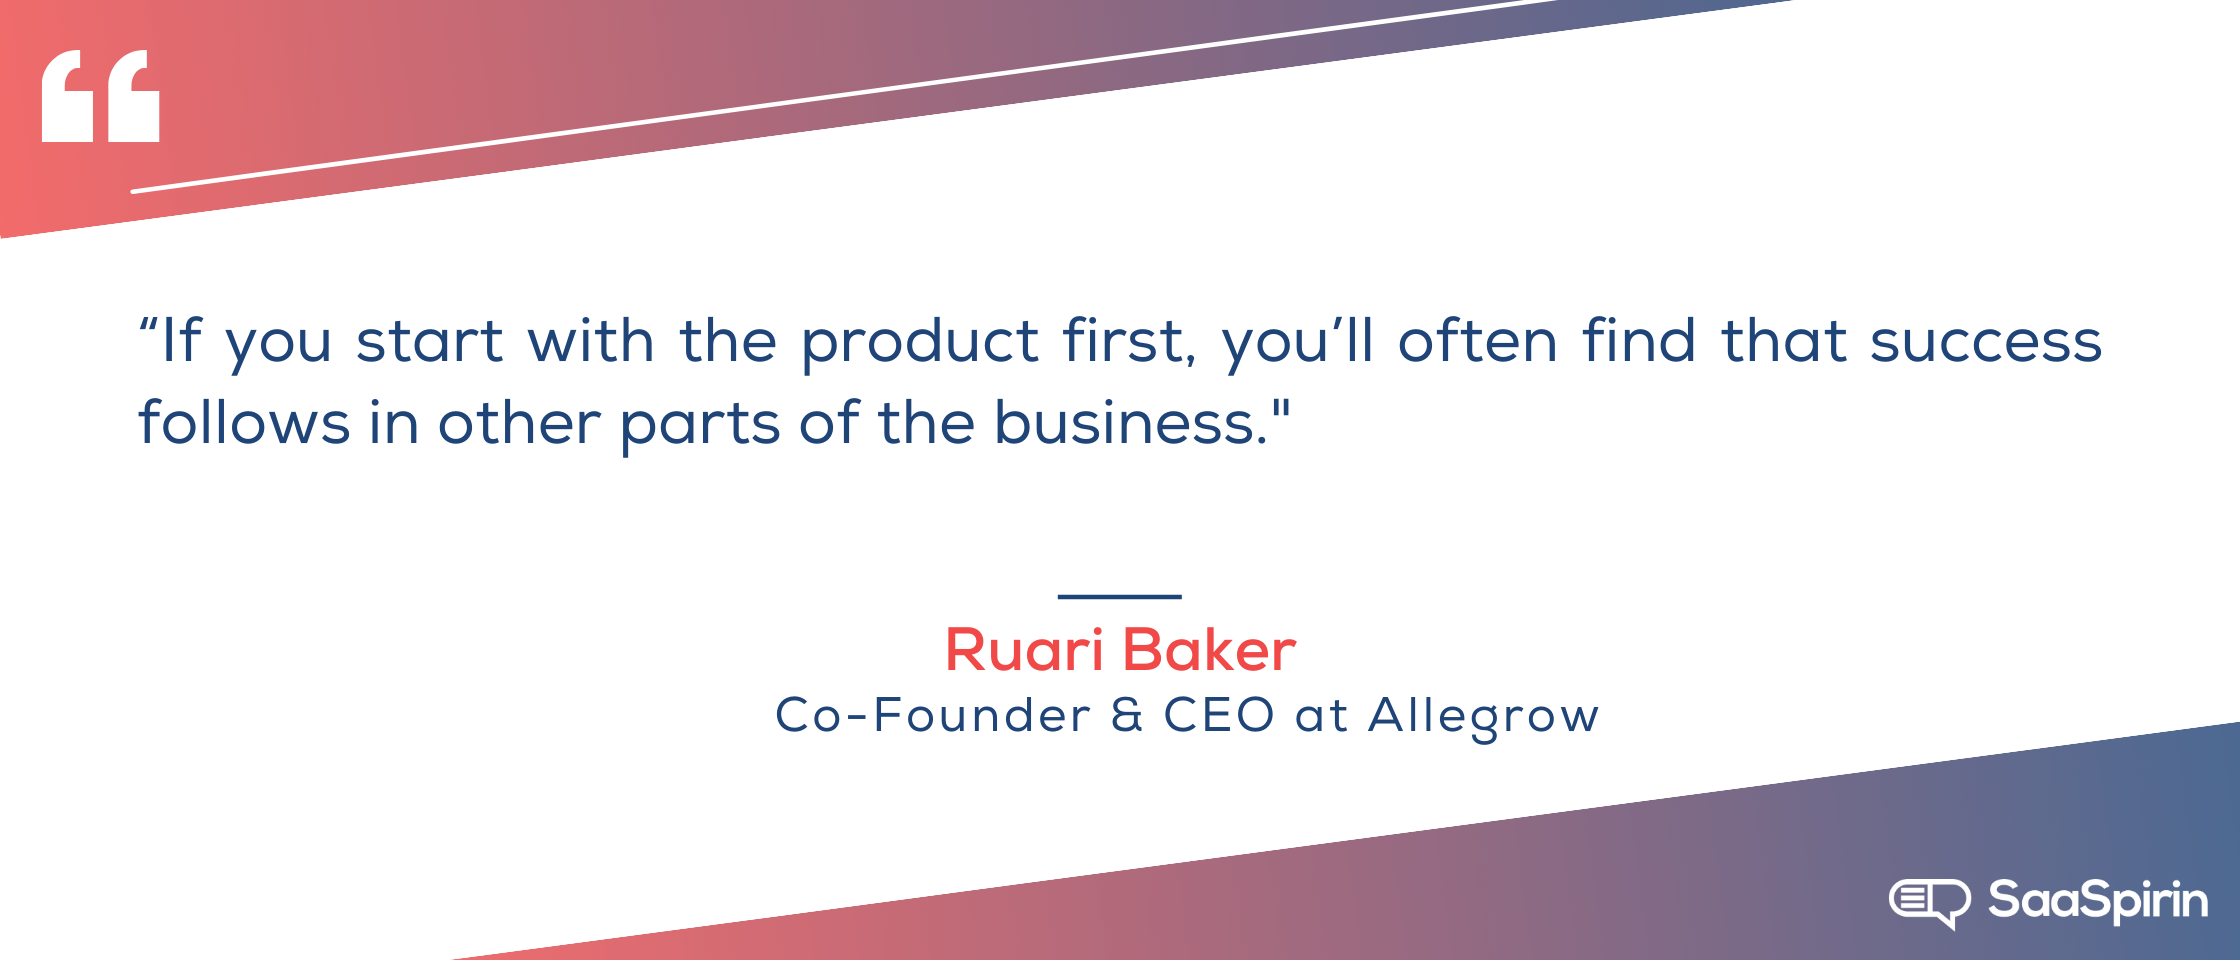 If-you-start-with-the-product-first-youll-often-find-that-success-follows-in-other-parts-of-the-business.png